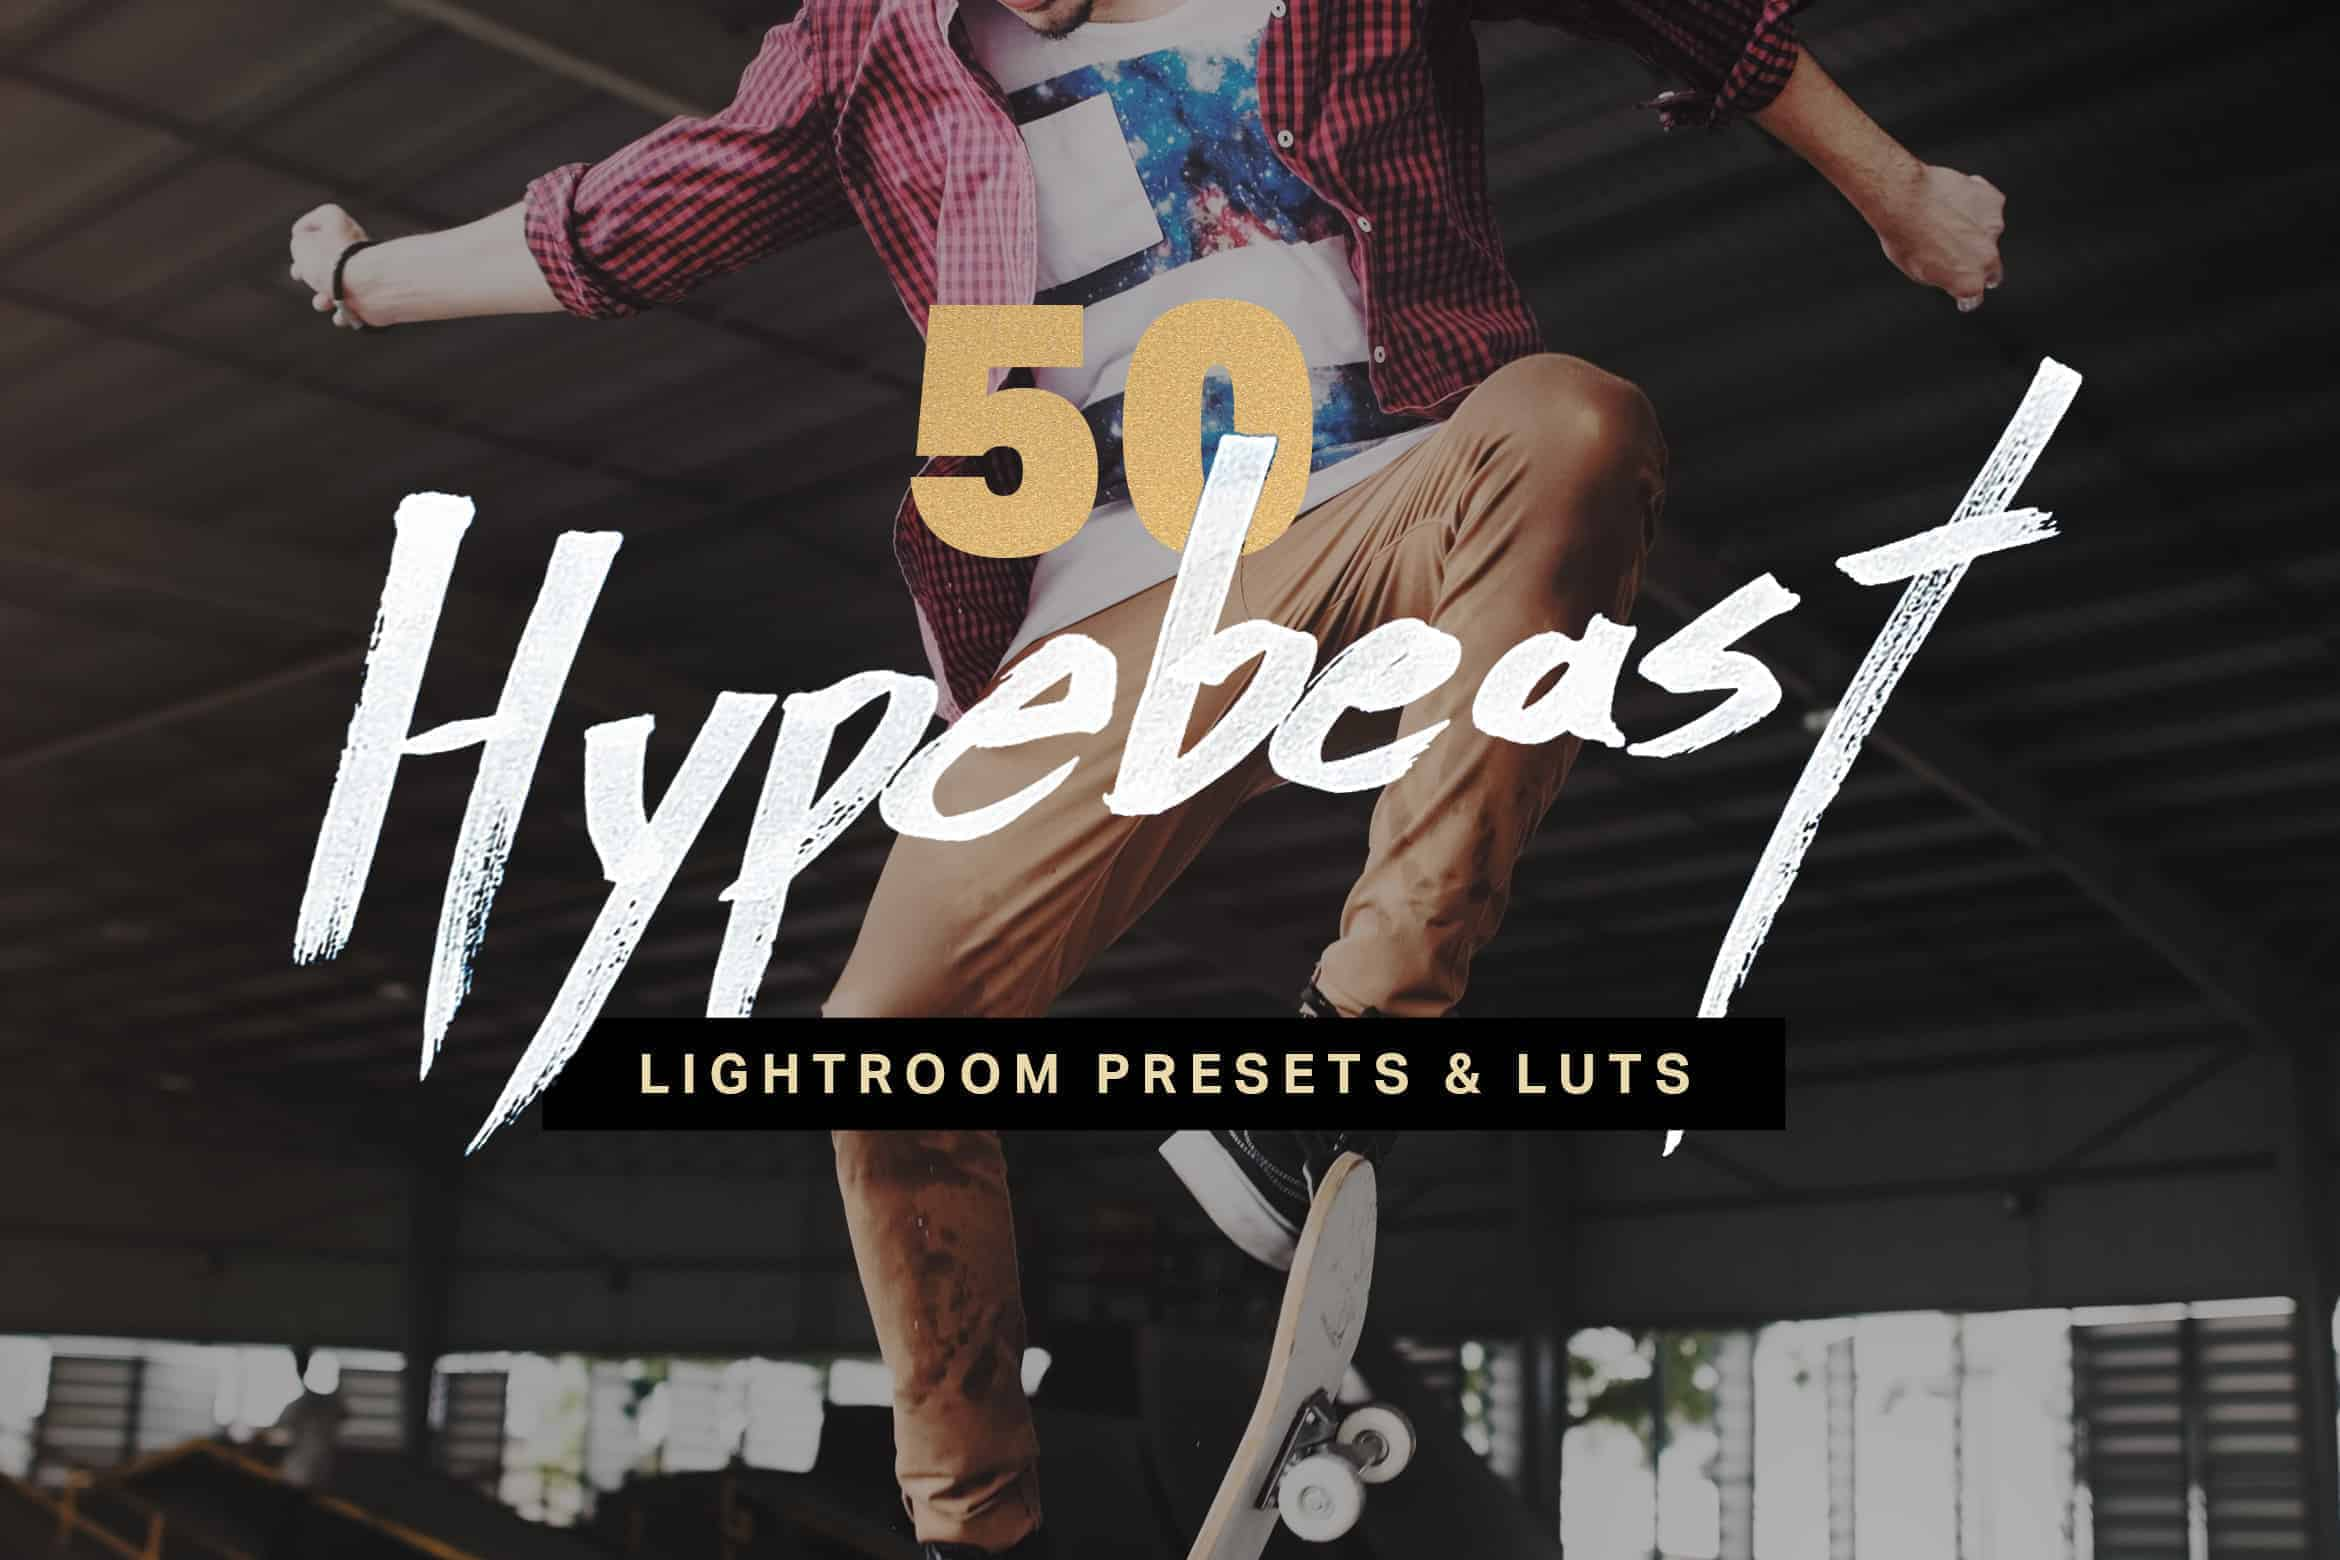 10 Hypebeast Lightroom Mobile Presets and LUTs